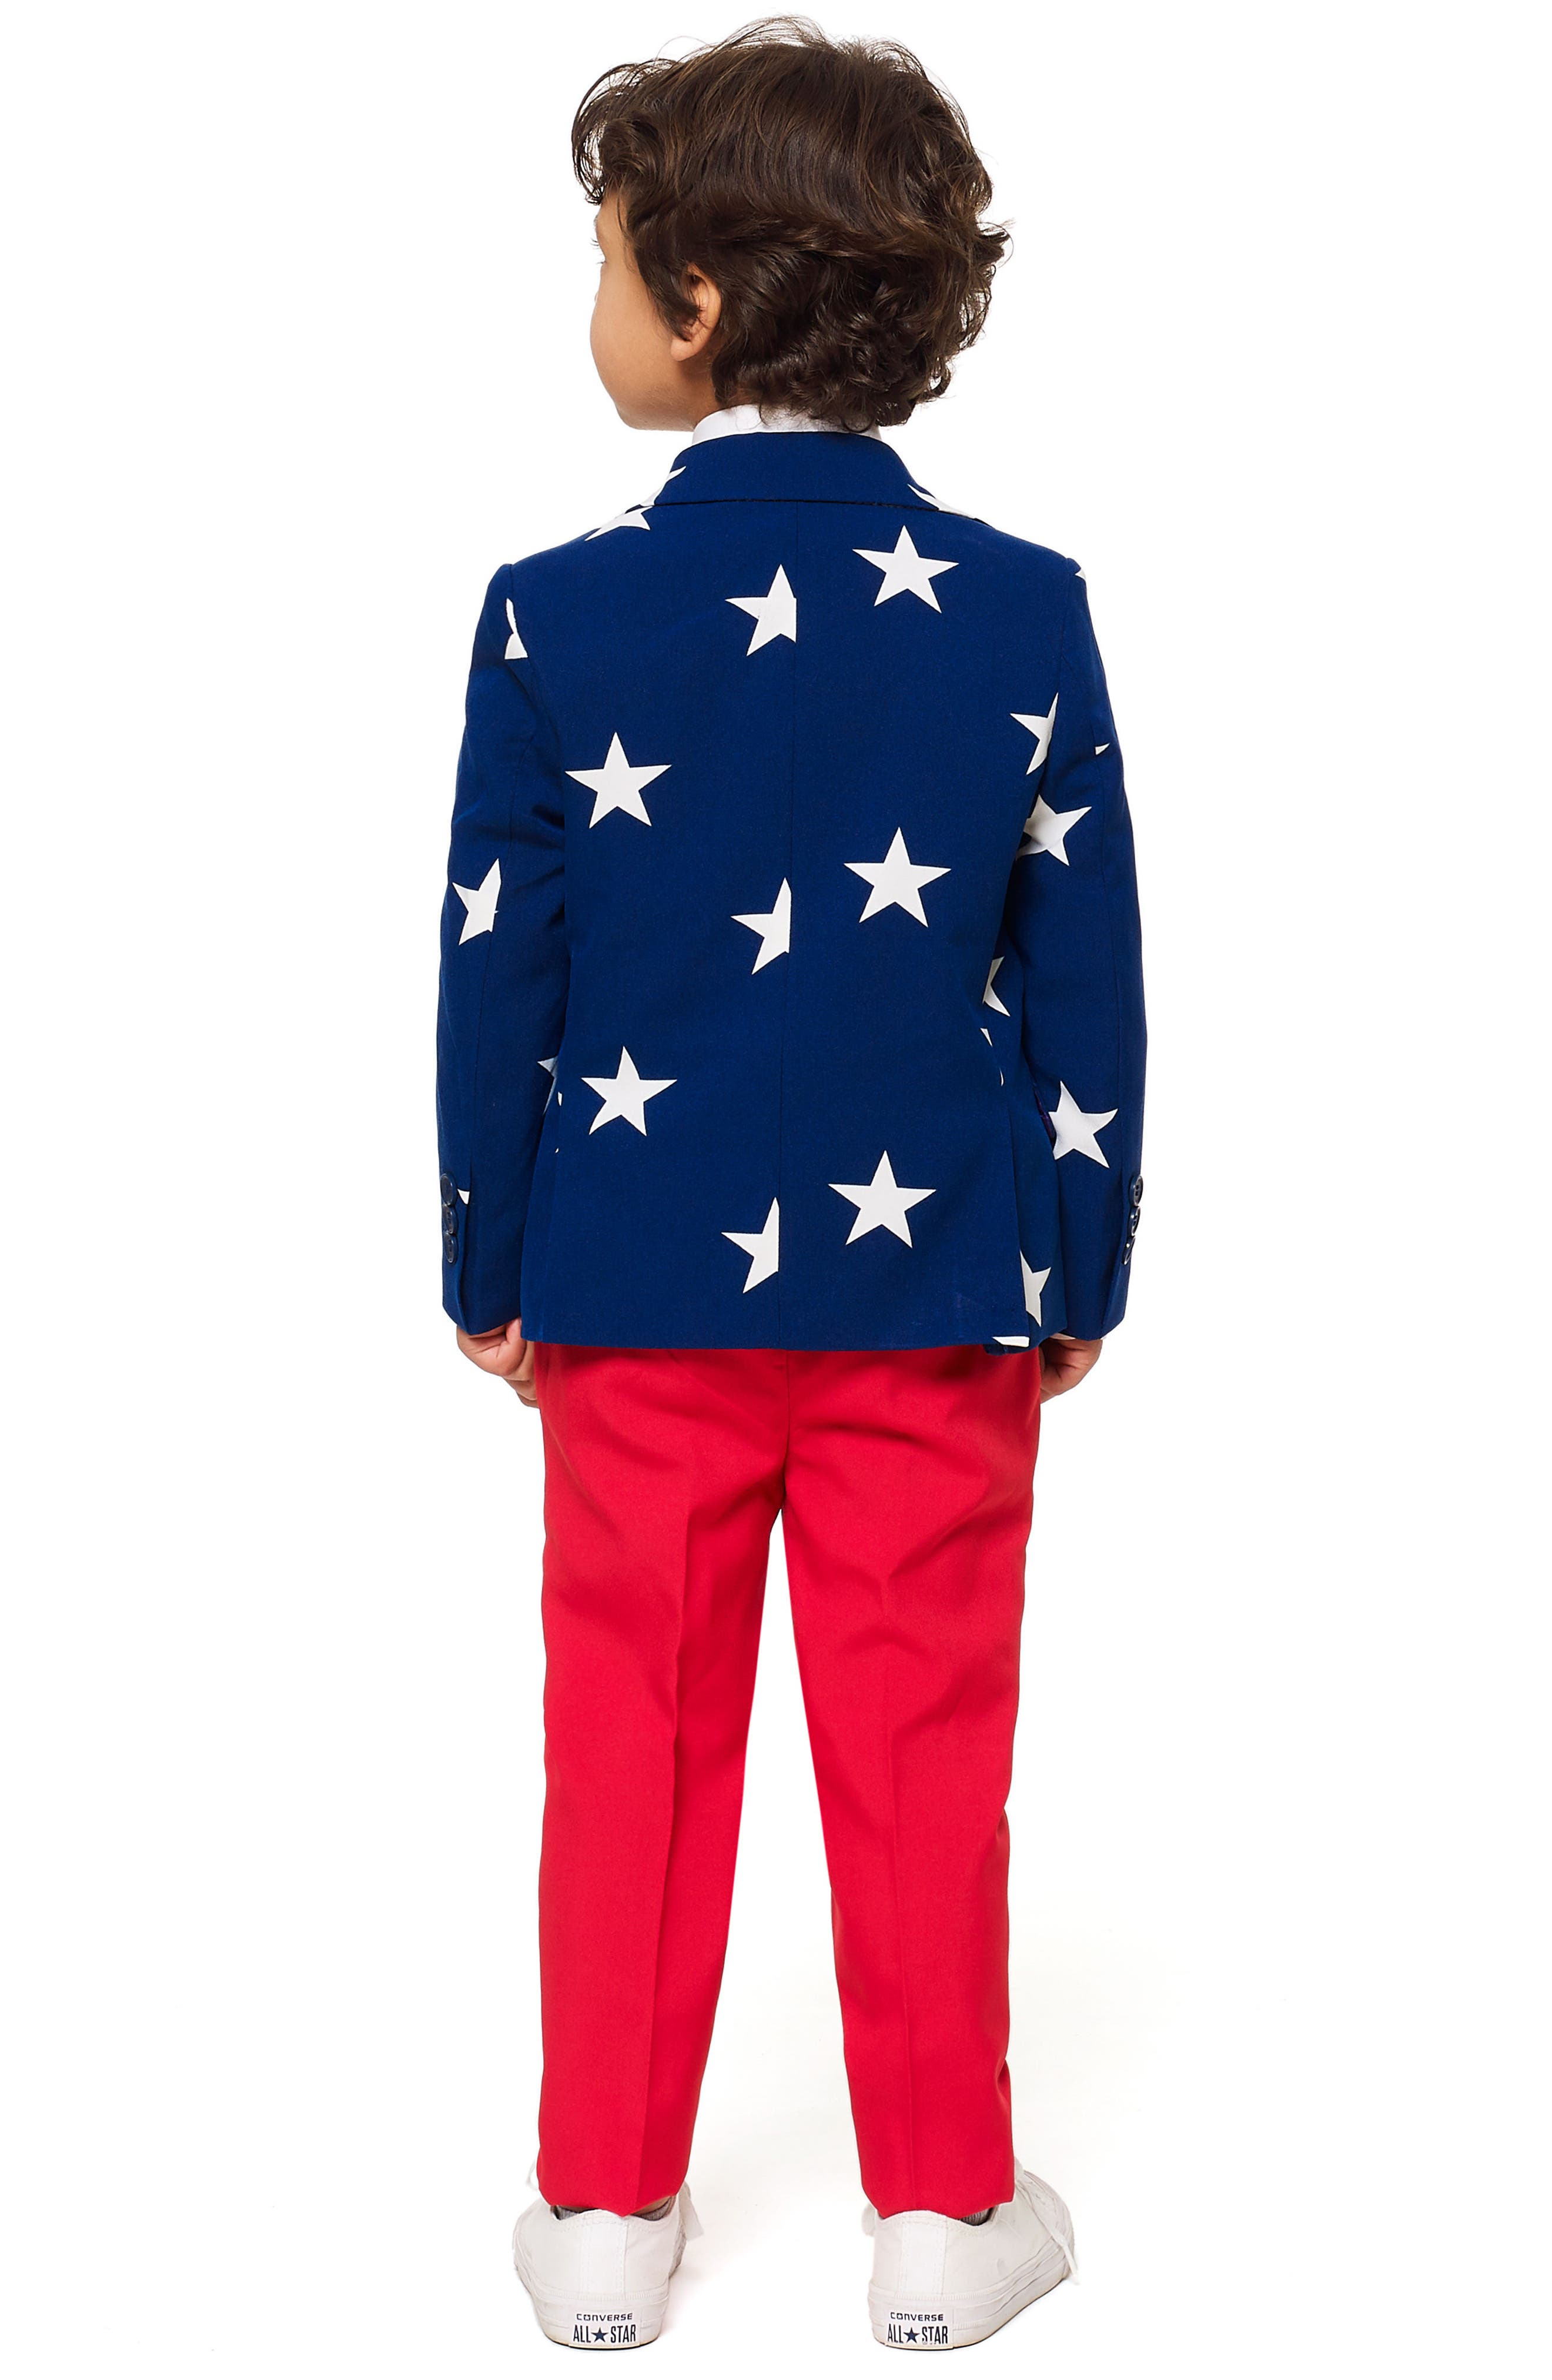 Stars & Stripes Two-Piece Suit with Tie,                             Alternate thumbnail 2, color,                             BLUE